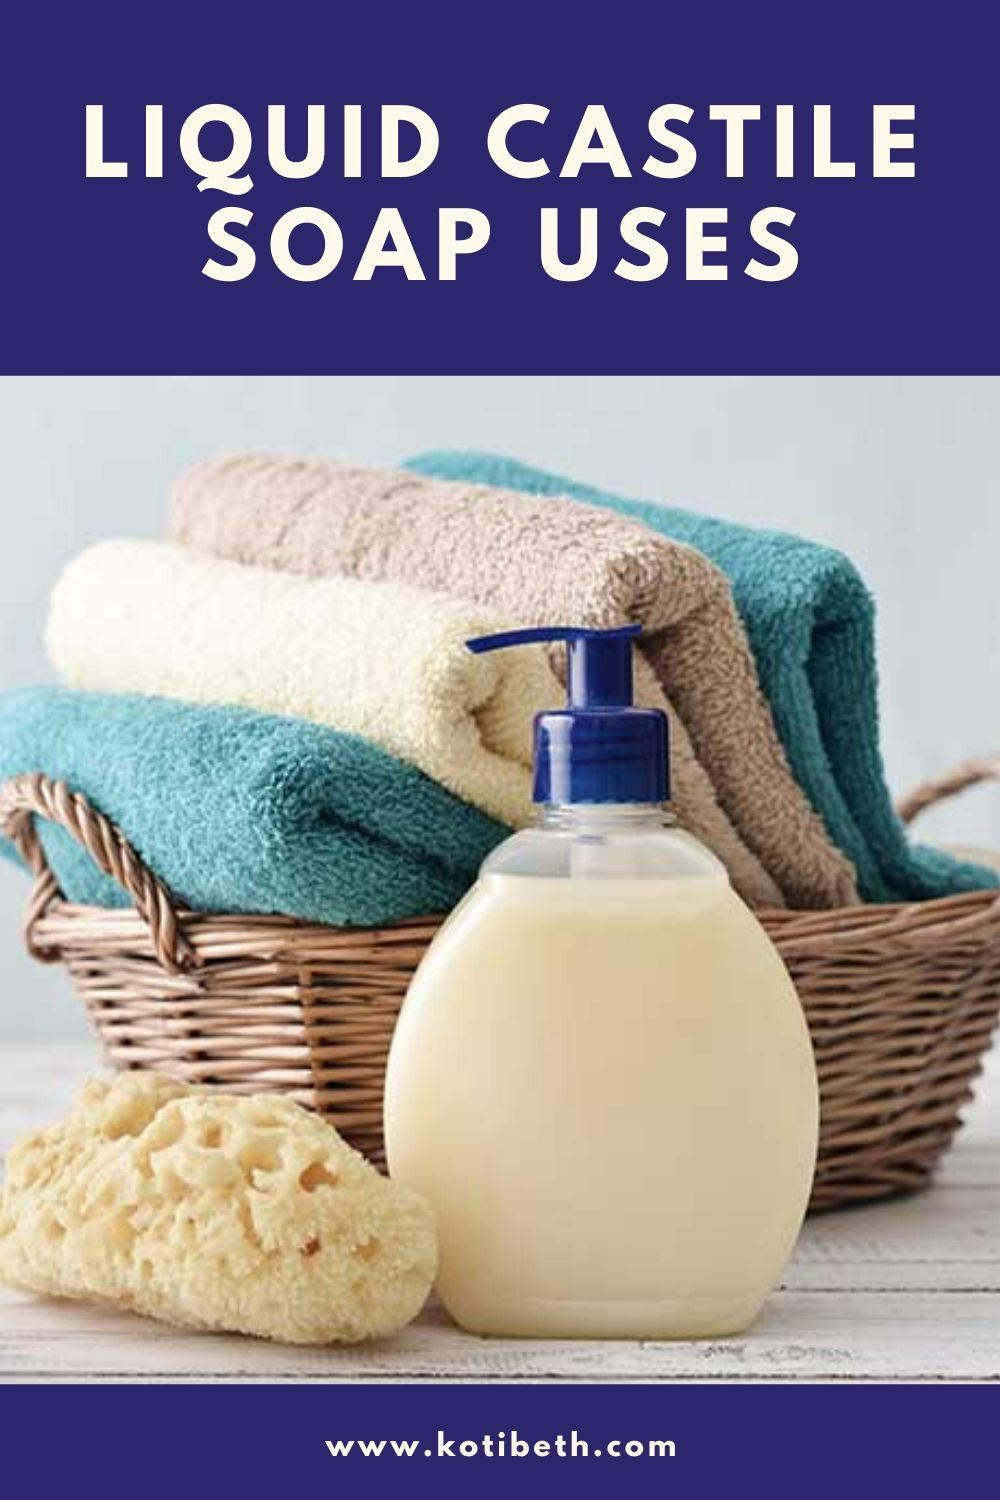 15 Liquid Castile Soap Uses in 2020 Castile soap uses